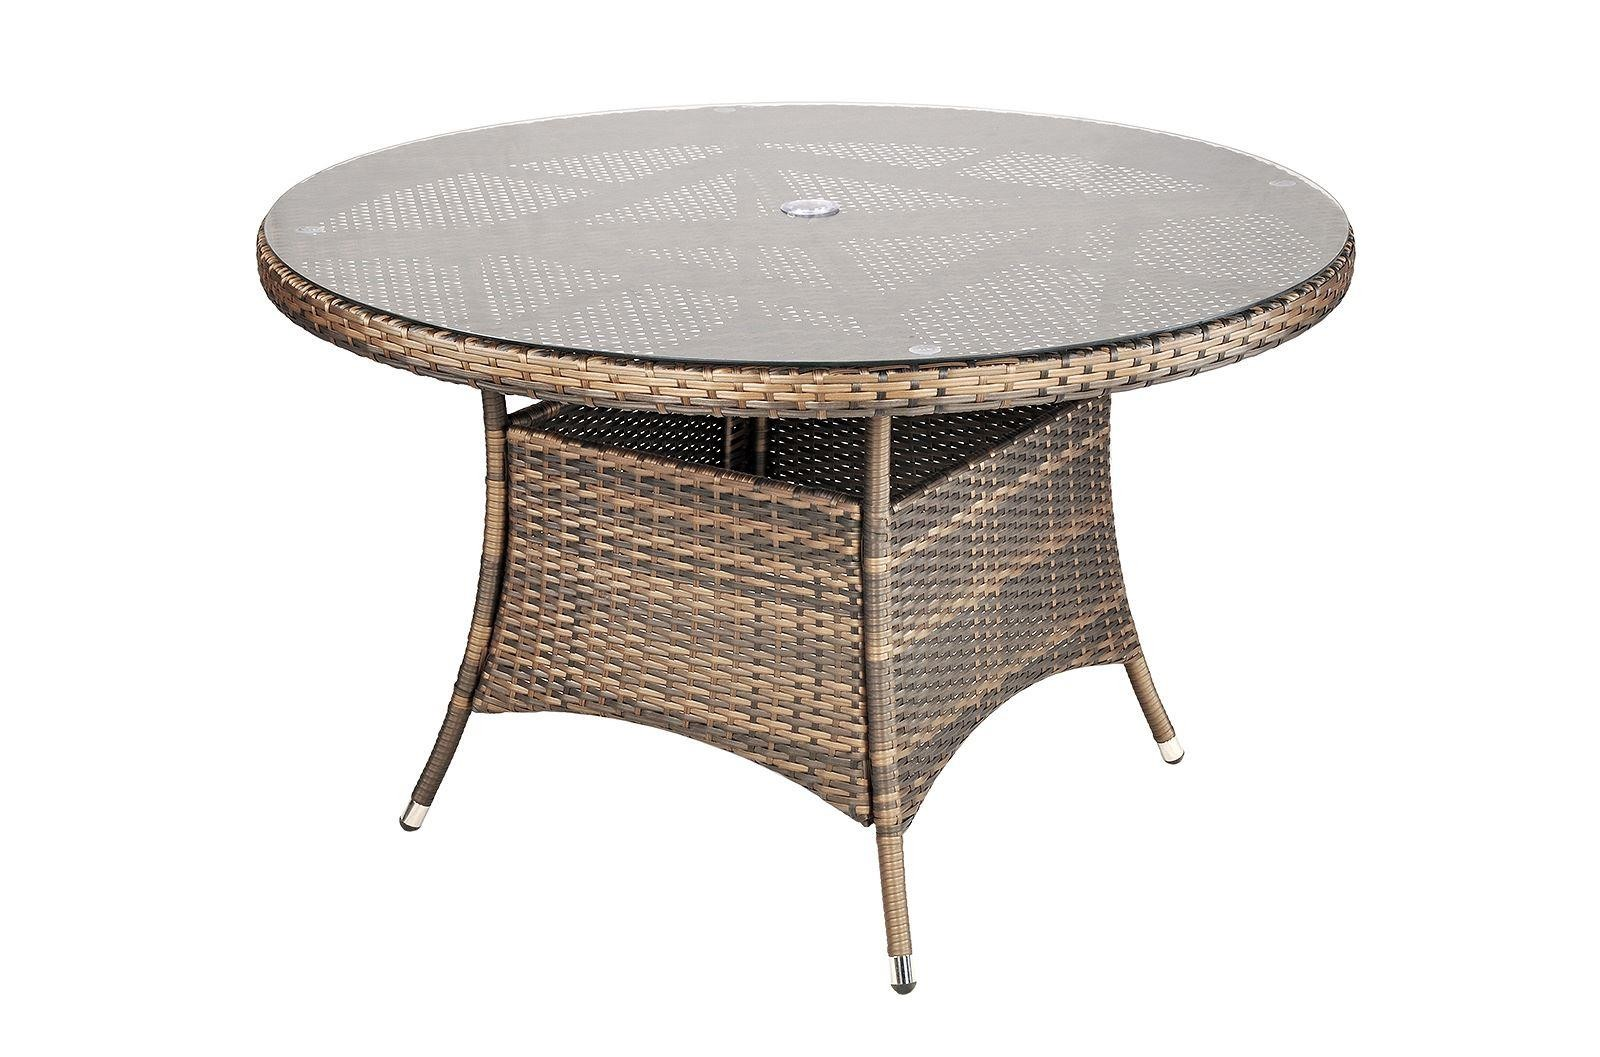 Rattan Garden Furniture 4 Seater savannah garden furniture [4 seat dining set with square table]